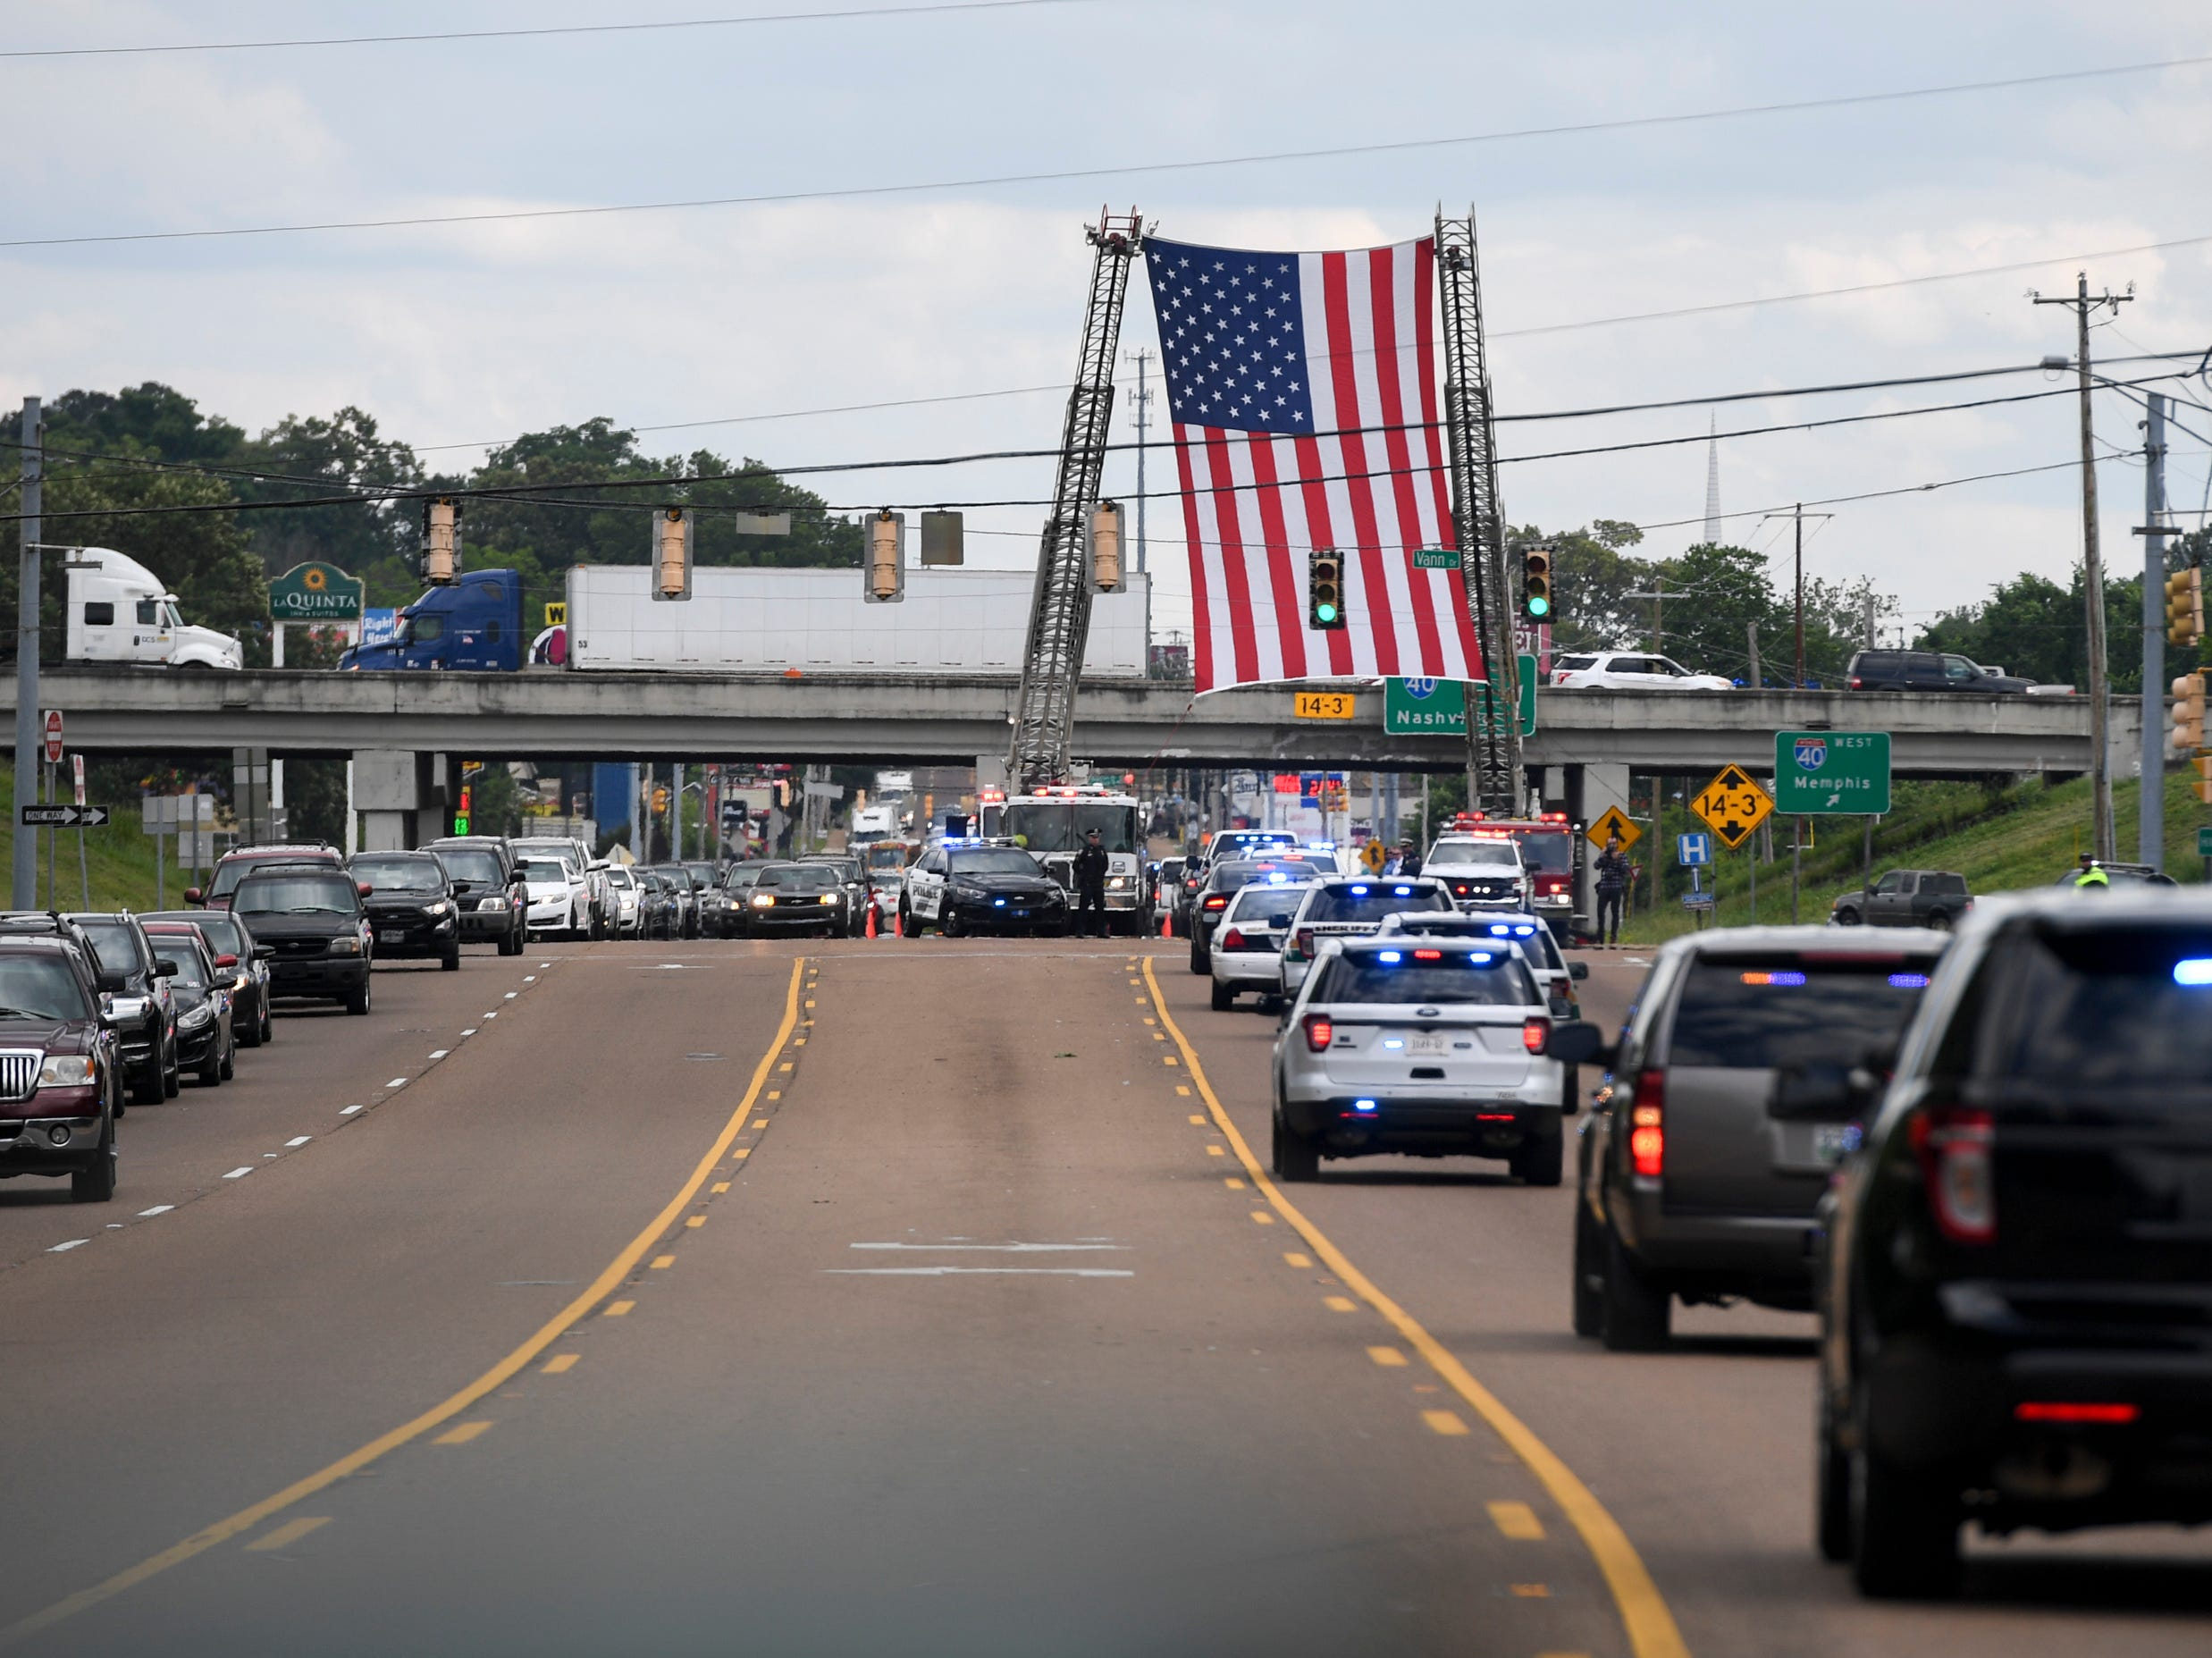 The funeral procession for Tennessee State Trooper Matthew Gatti passes through Jackson, Tenn., Monday, May 13, 2019. Gatti died in the line of duty in an accident while responding to a car fire on I-40 in Madison County on May 6.